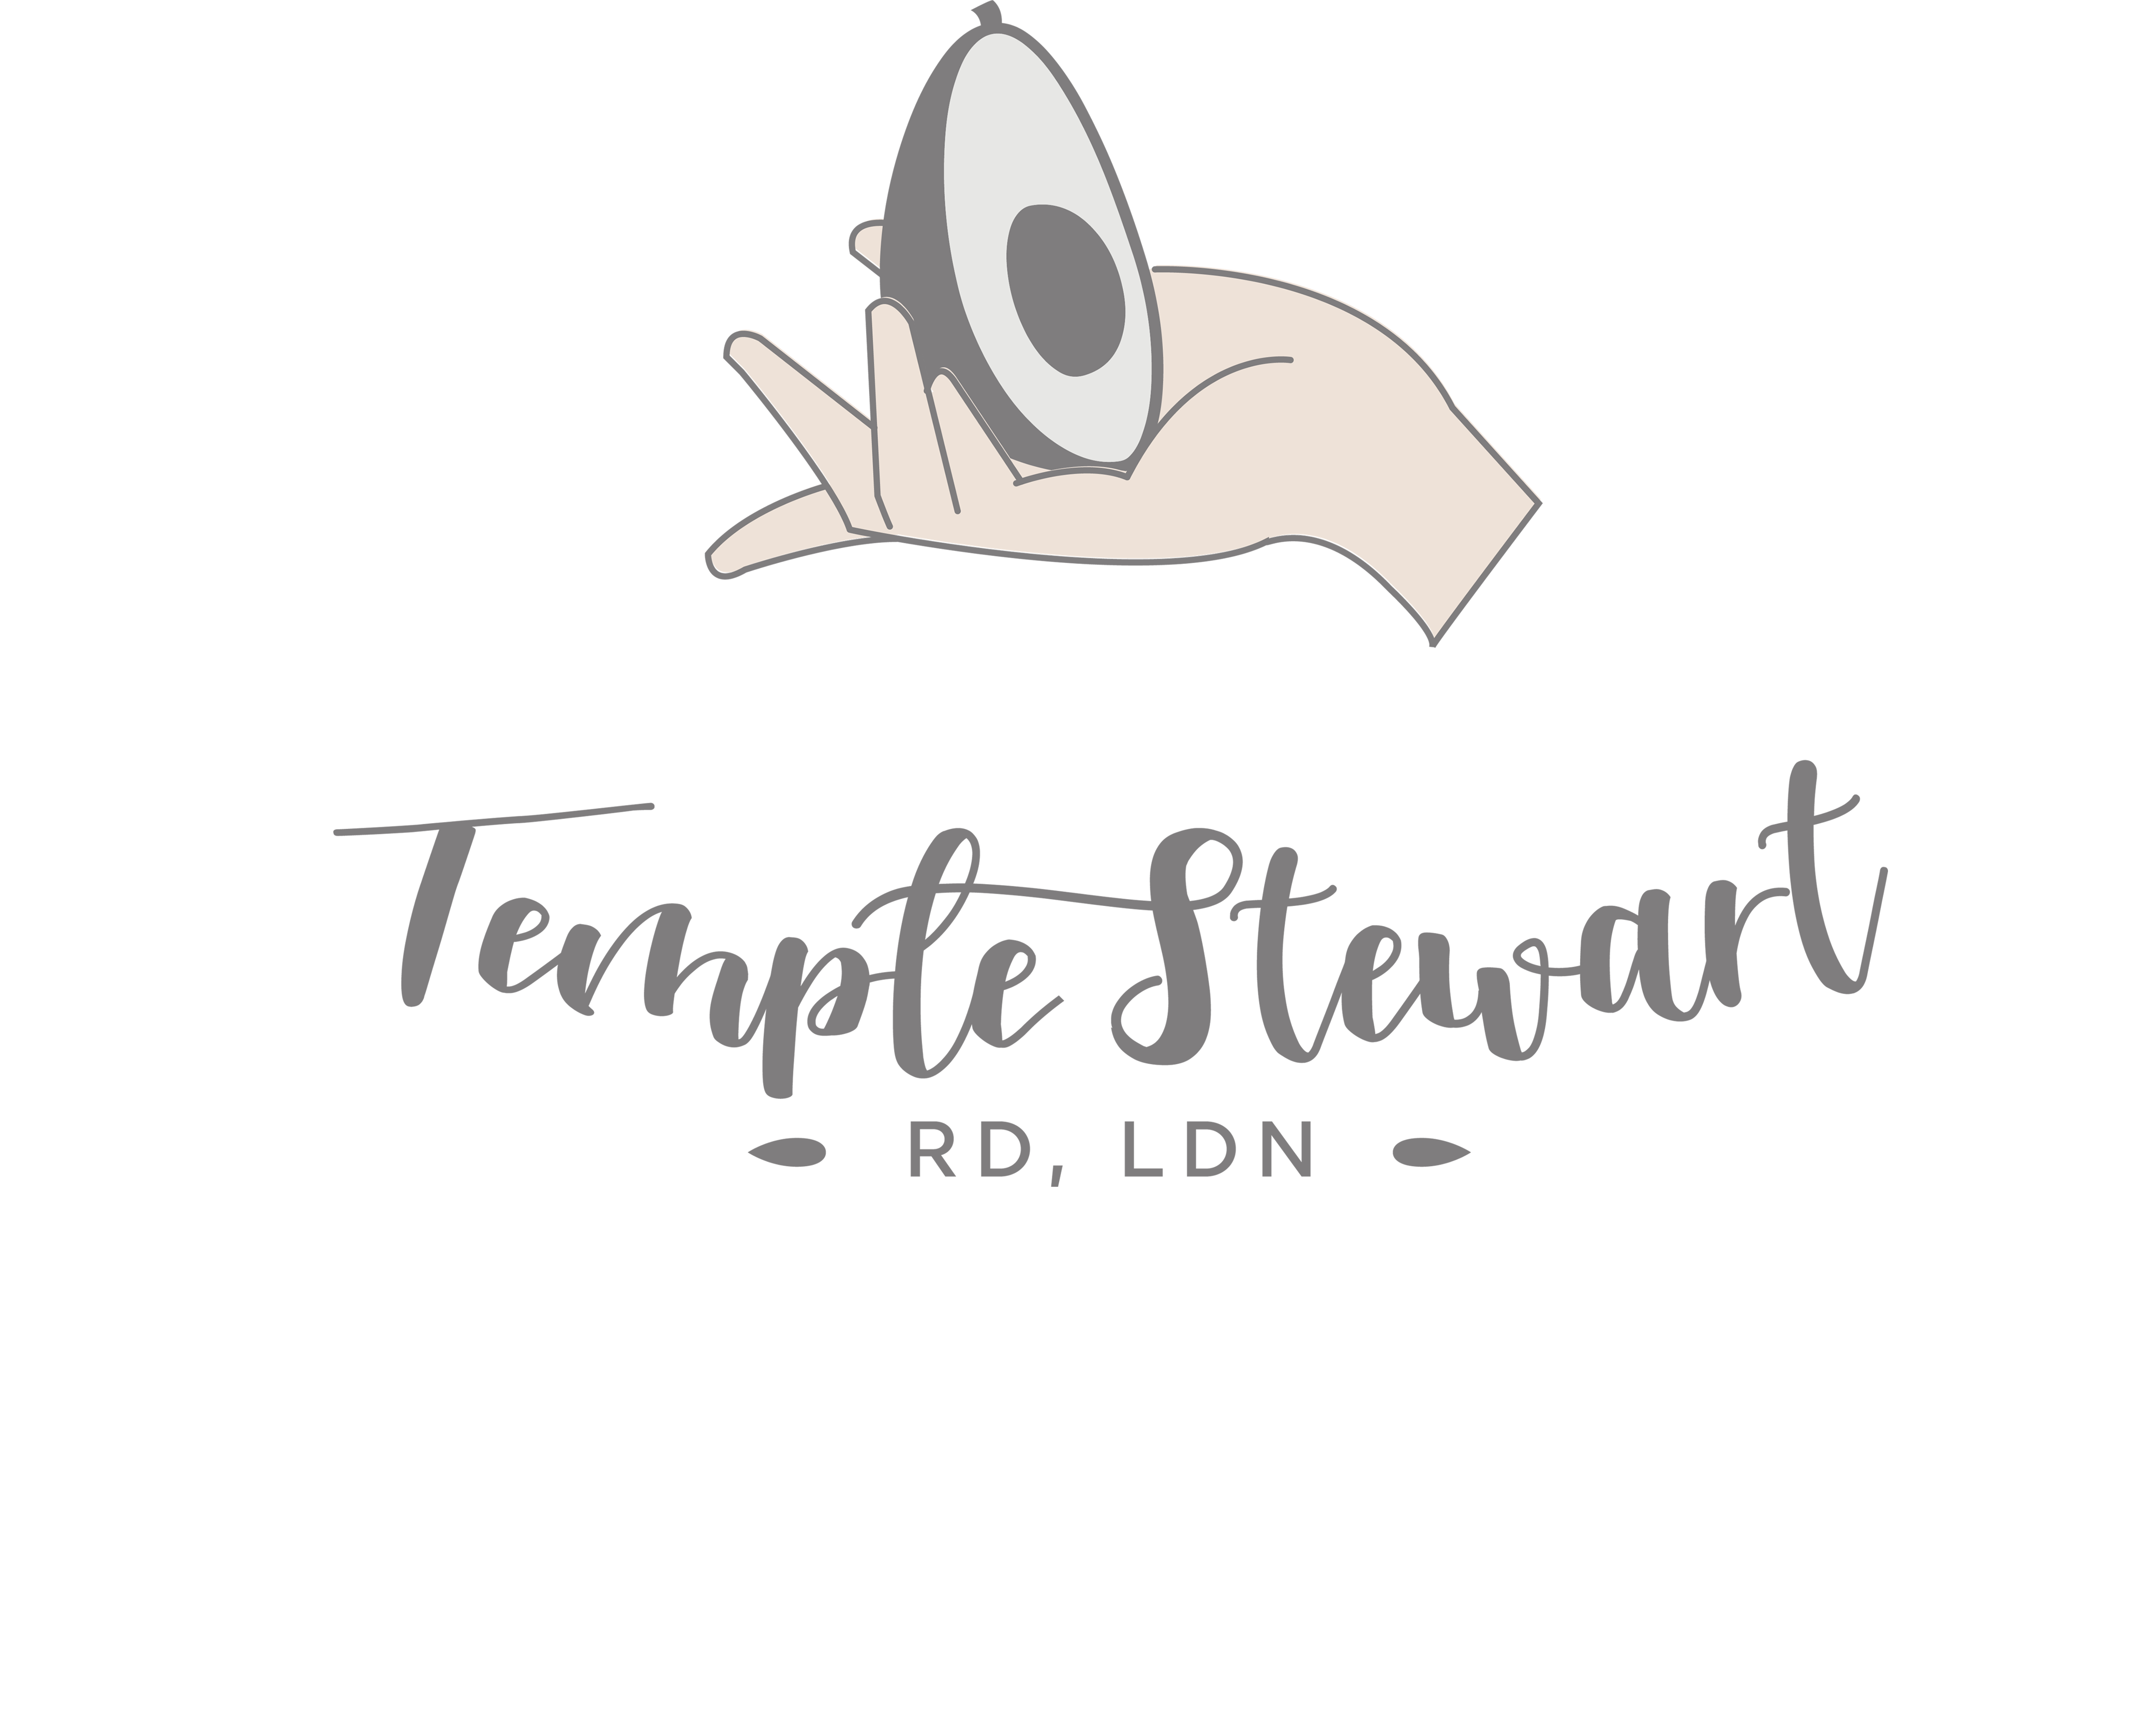 Temple Stewart | Registered Dietitian